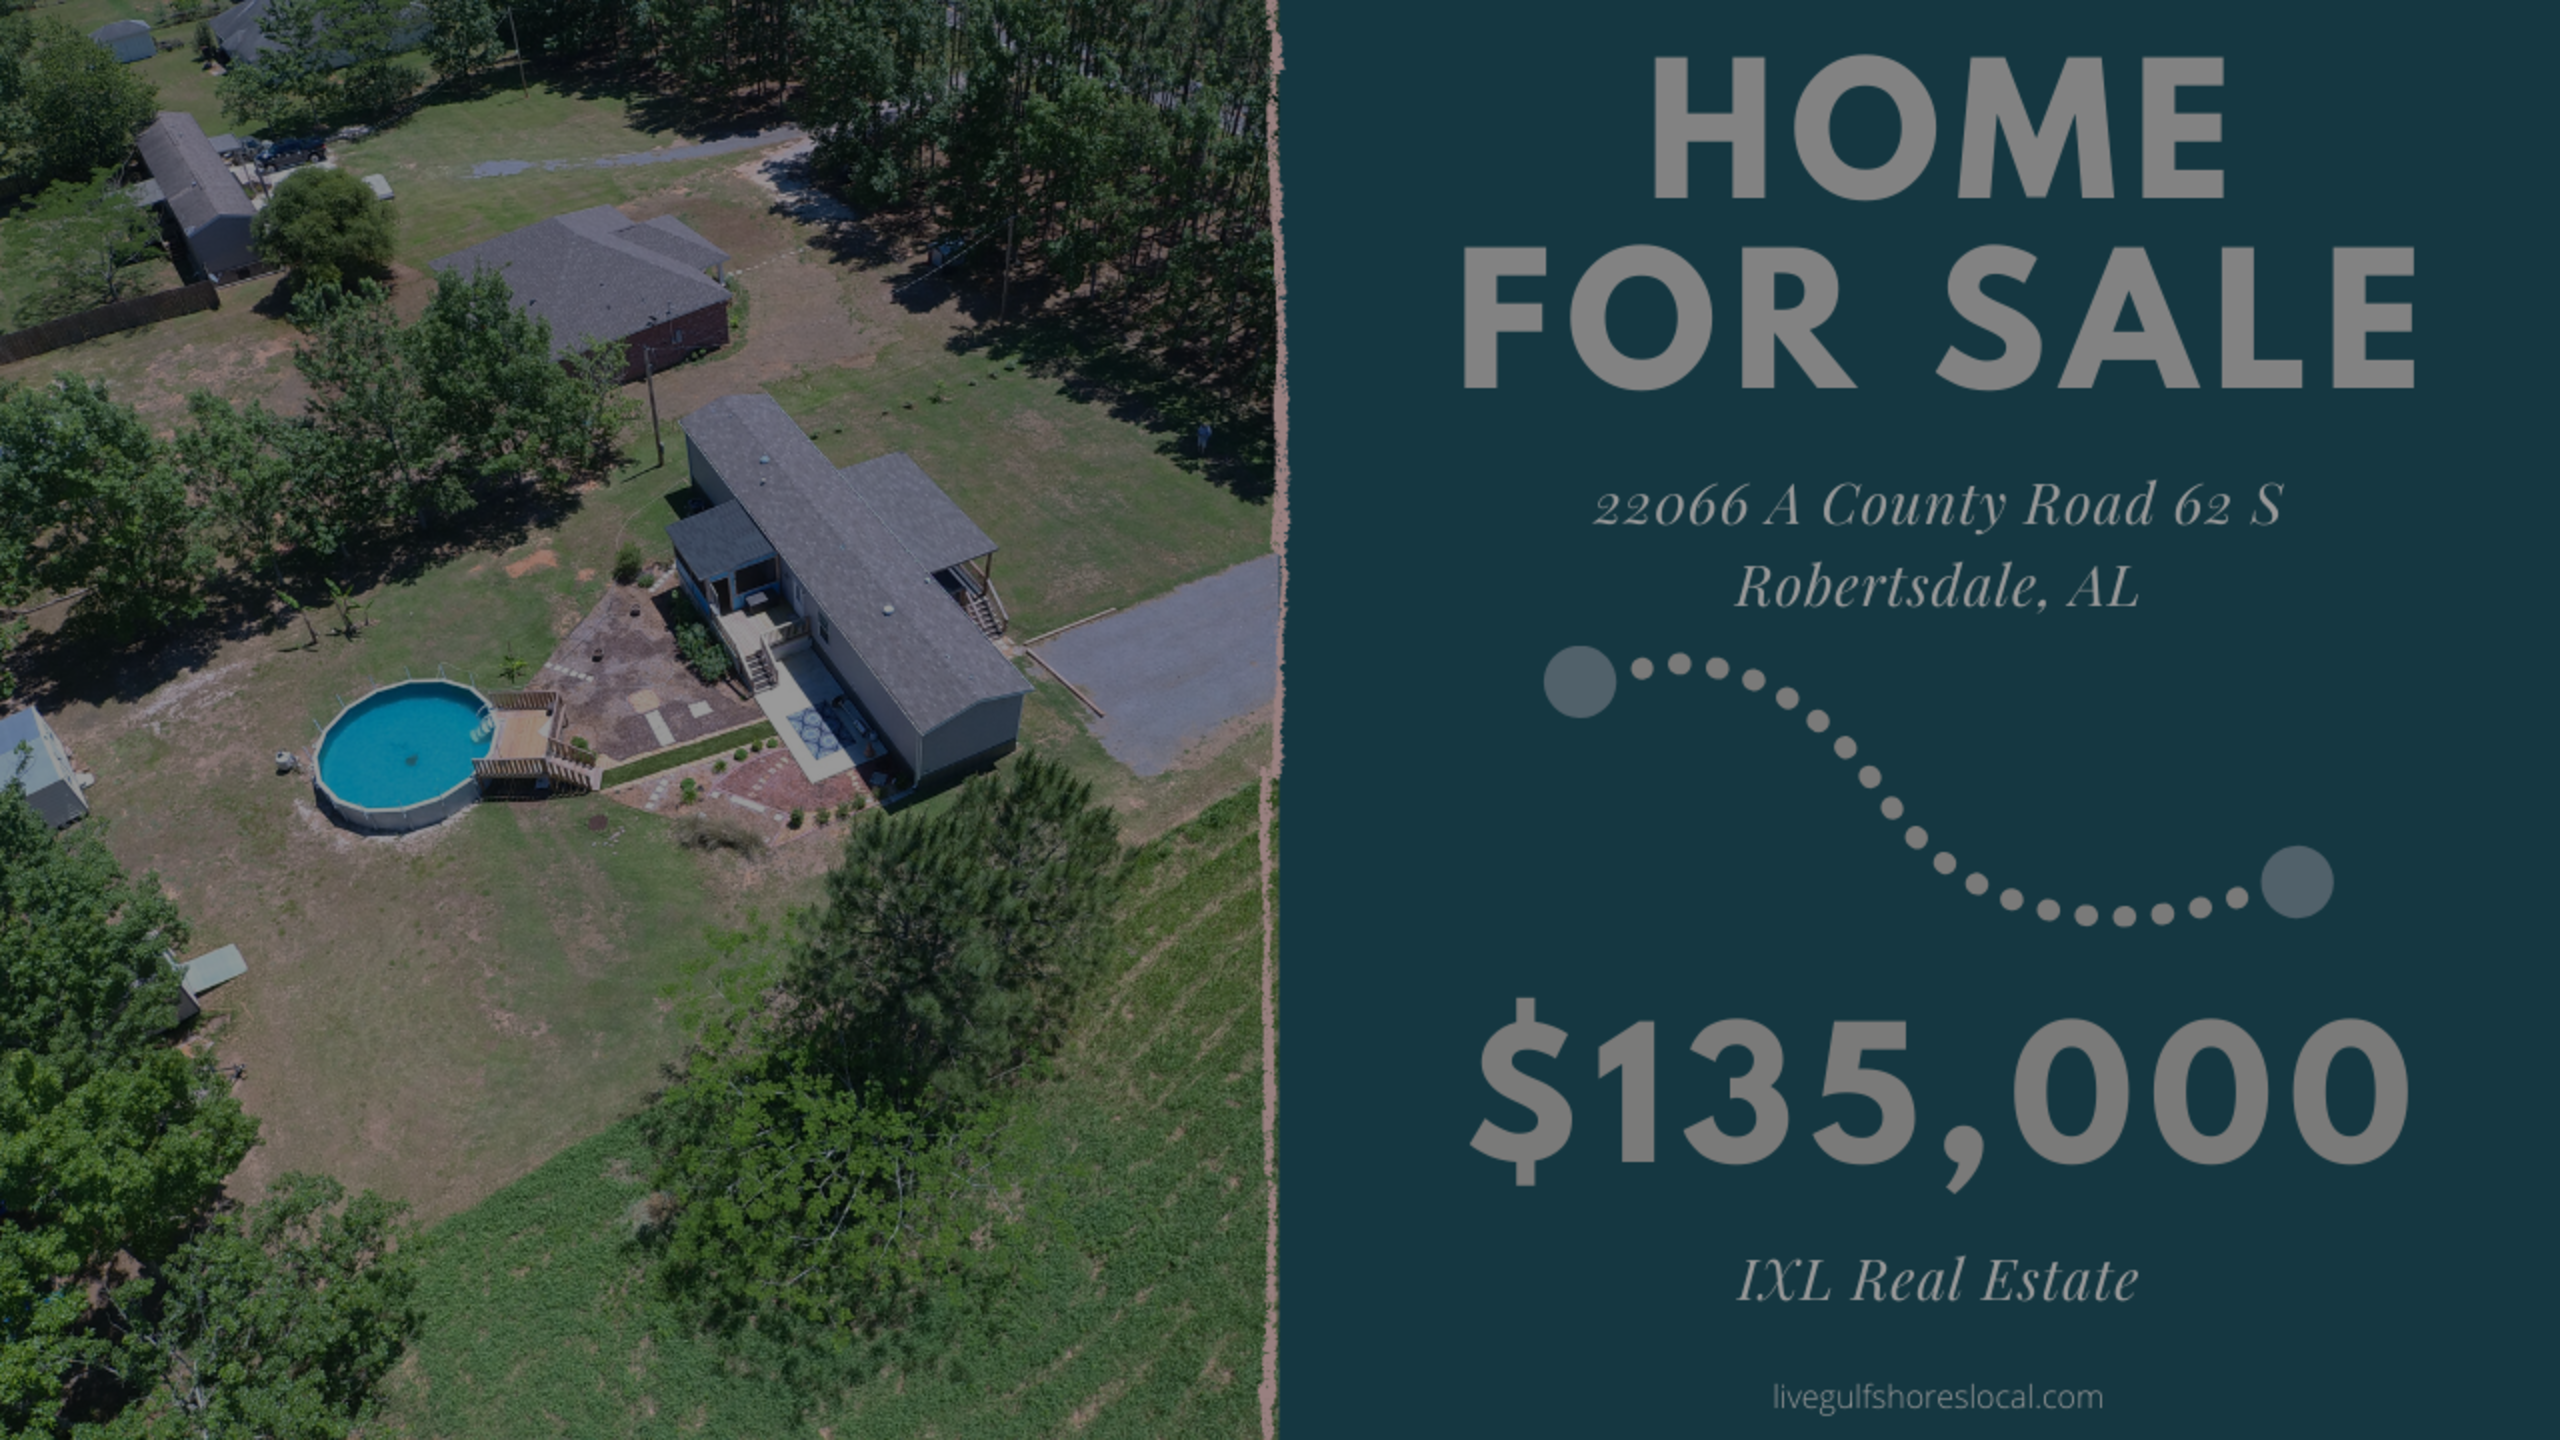 22066-A County Road 62 Robertsdale